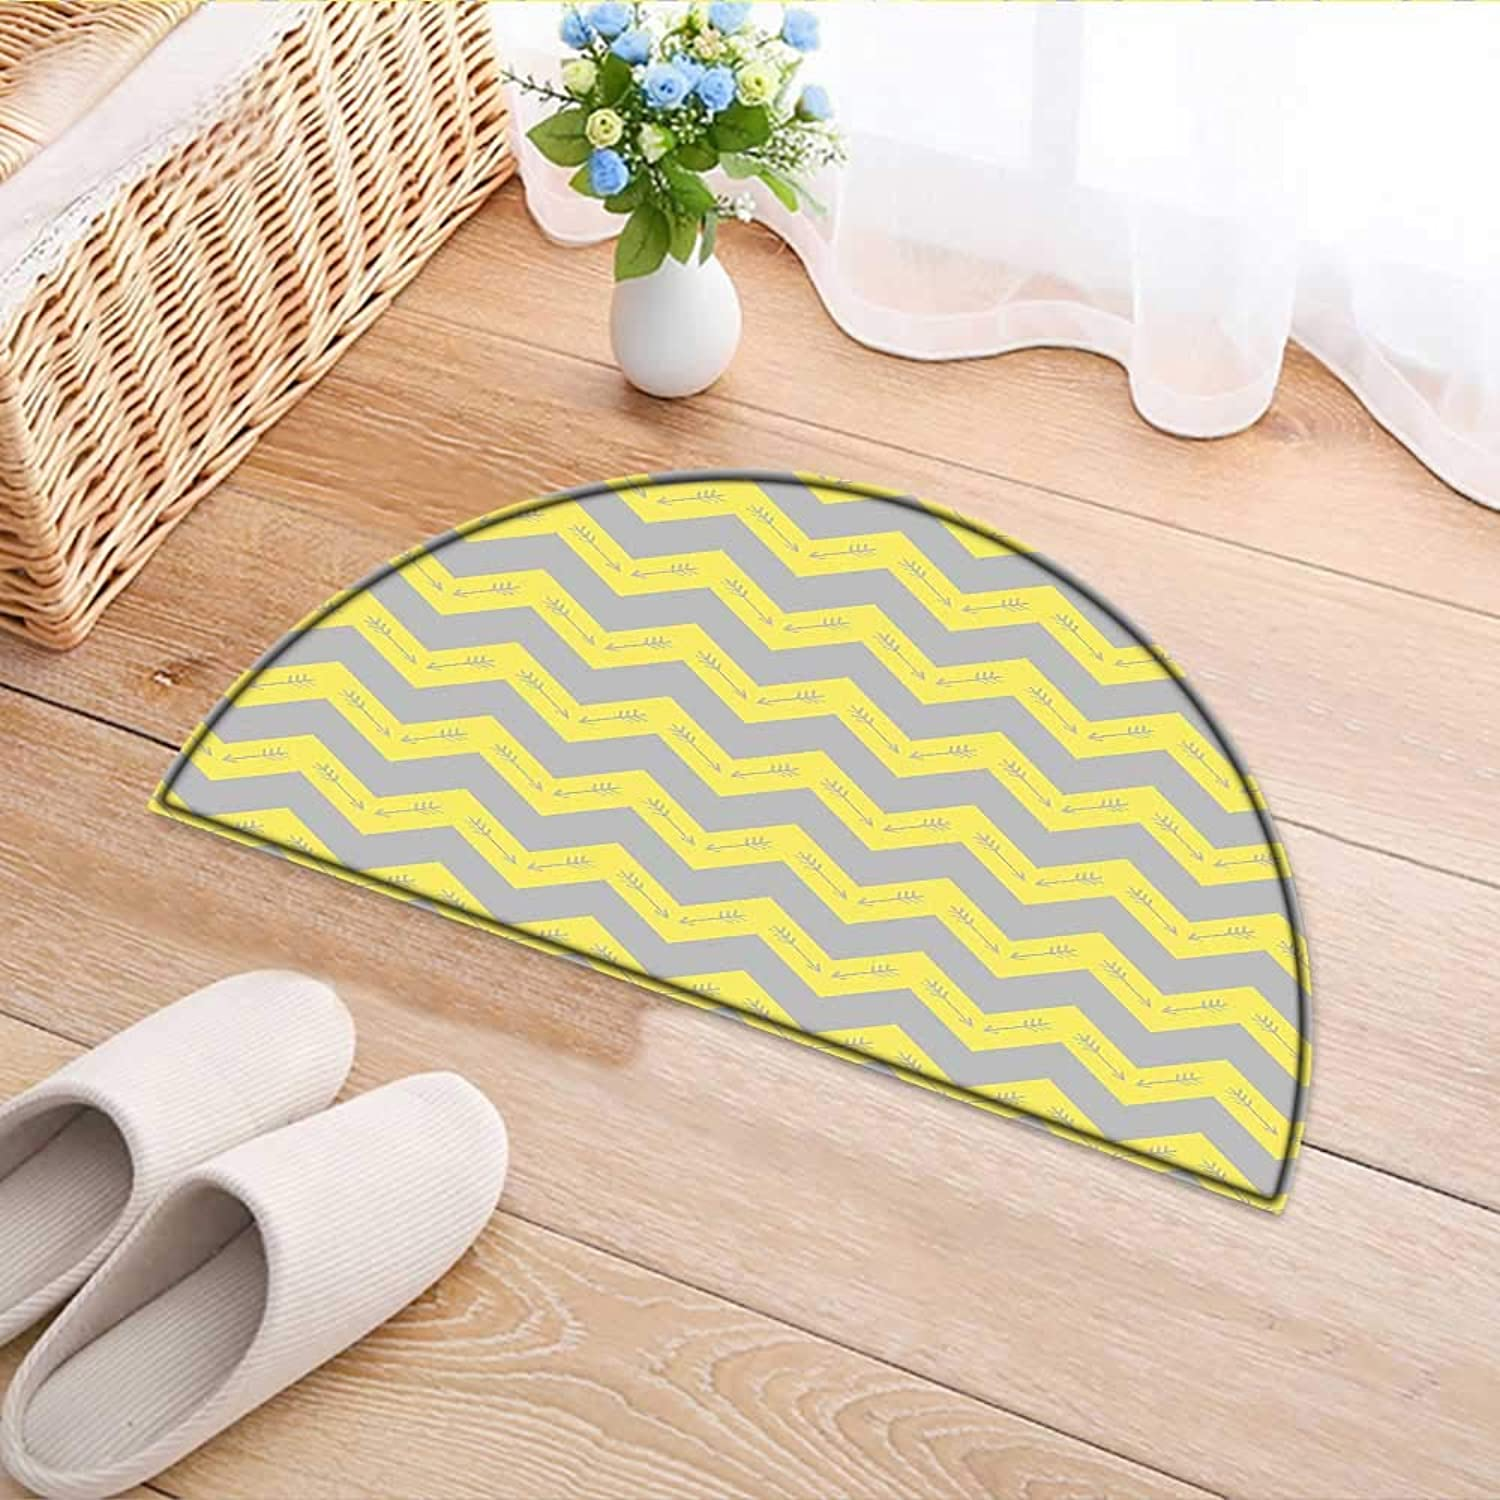 Semicircle Area Rug Carpet Zag Pattern with Tribal Native American Arrows Primitive Abstract Design Yellow Light Grey Door mat Indoors Bathroom Mats Non Slip W37 x H26 INCH